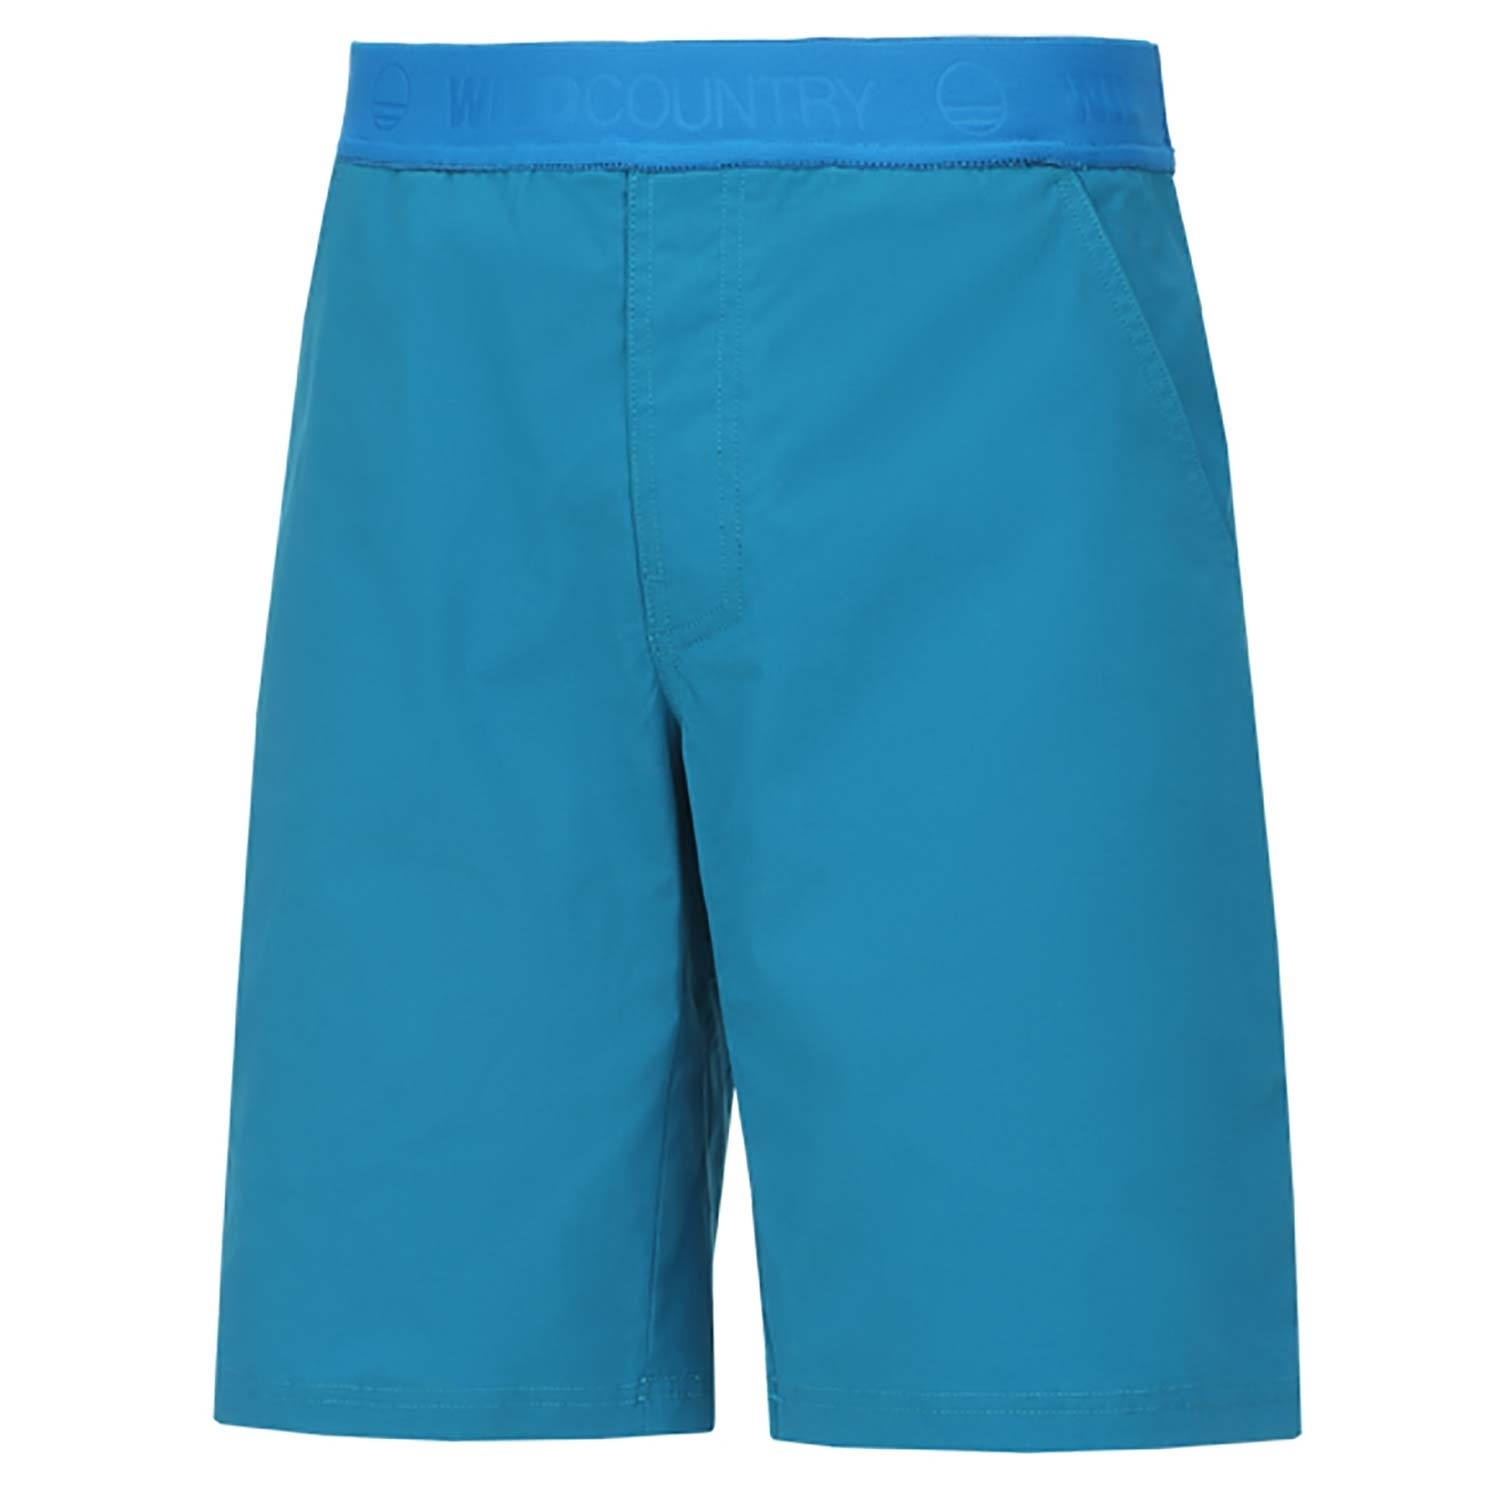 Wild Country Session Short - Mens - Blue Reef